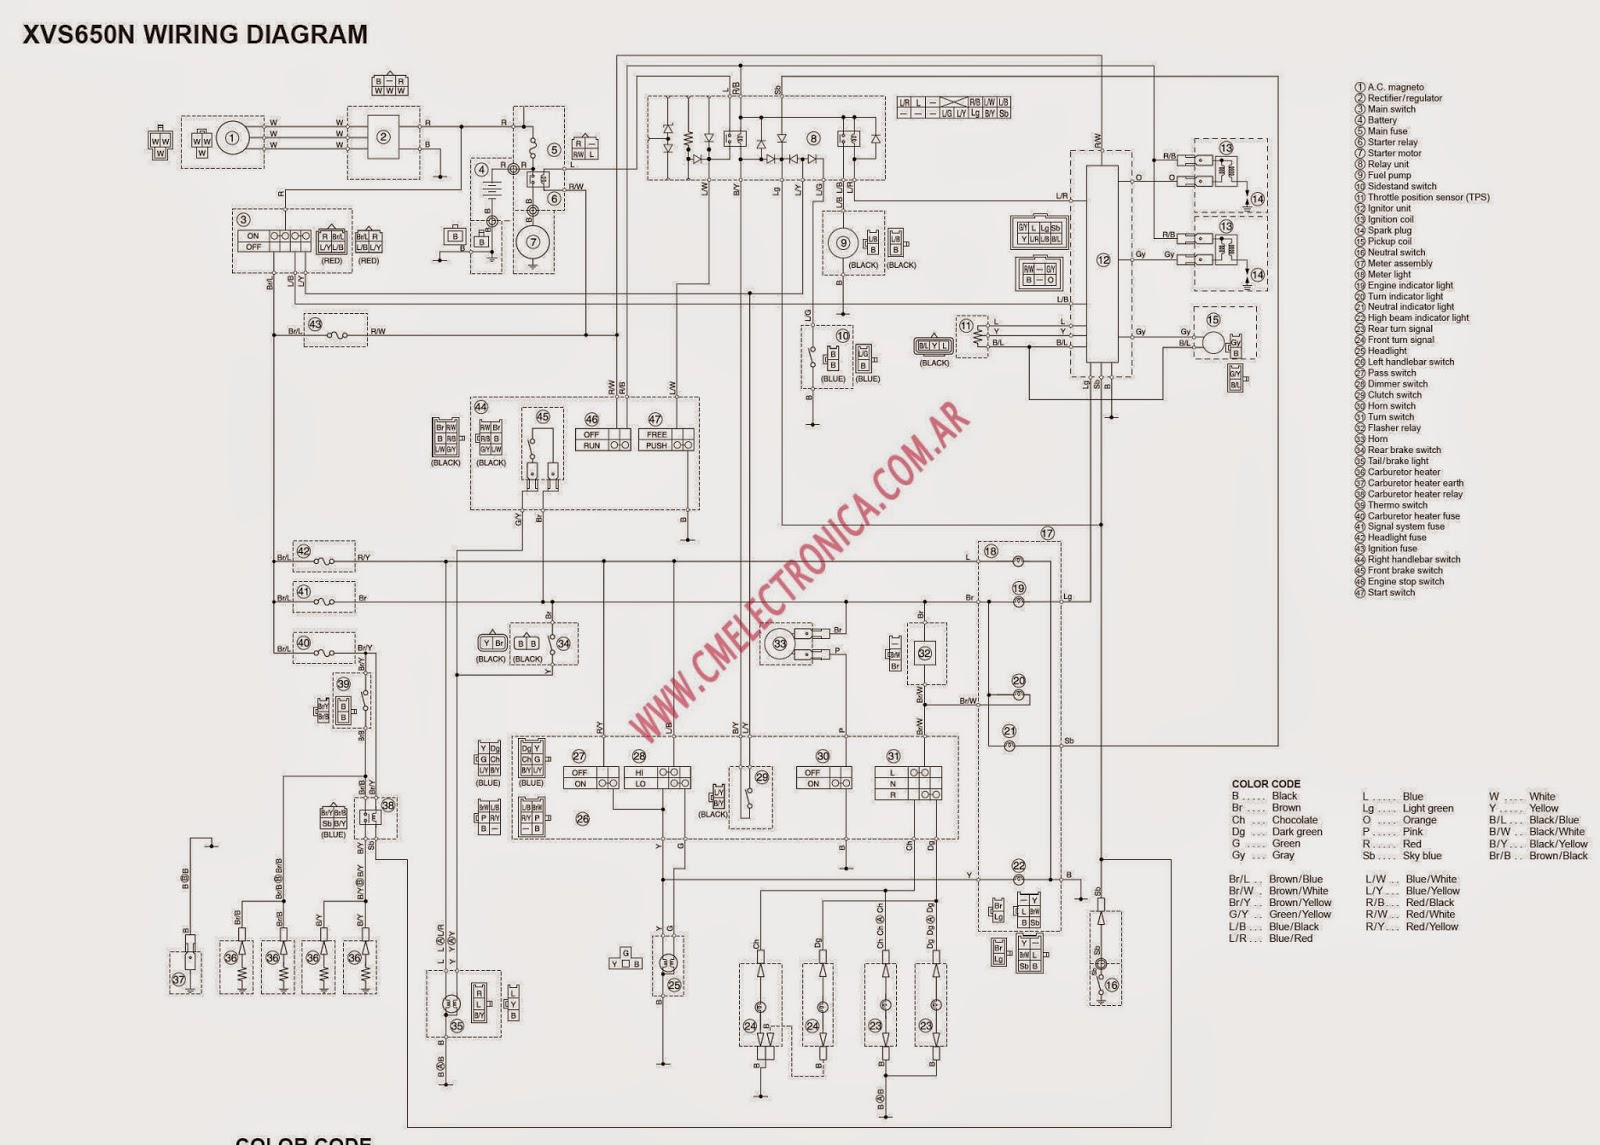 yamaha bws wiring diagram simple wiring schema basic house wiring diagrams yamaha v star 950 wiring [ 1600 x 1145 Pixel ]